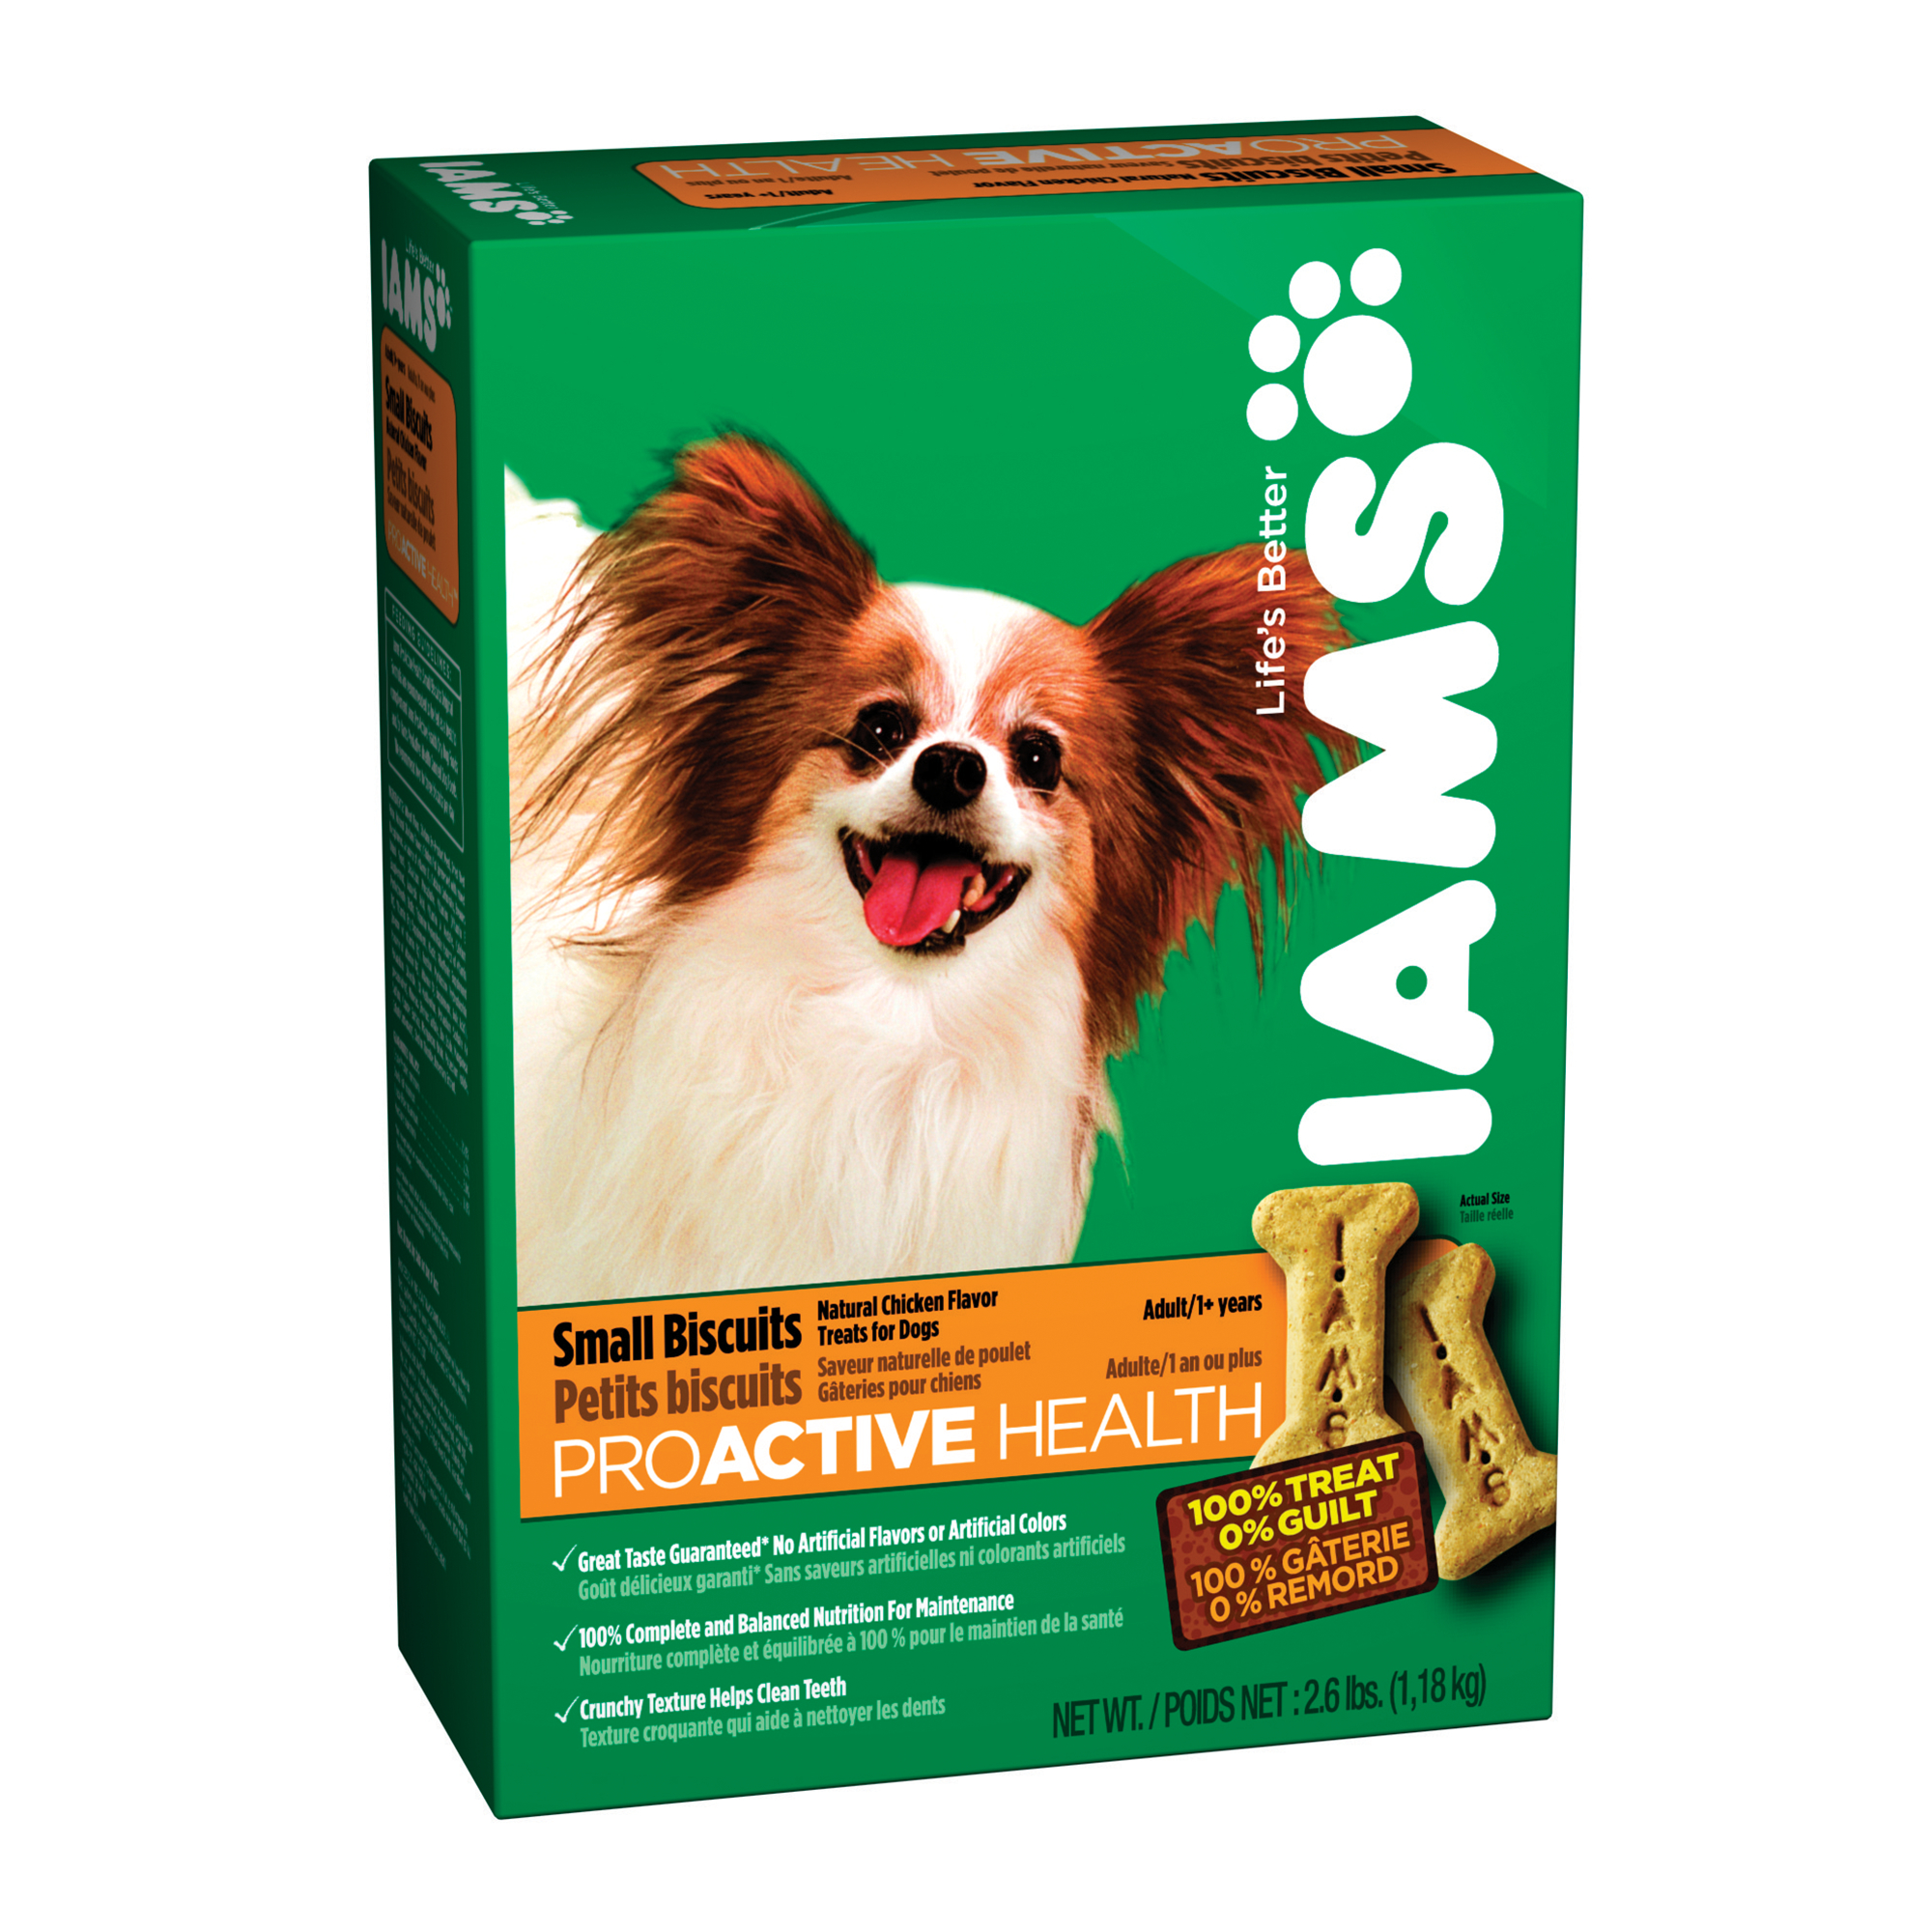 Iams Proactive Health Small Biscuits Adult Dog, 2.6Lb Bag (1.18 Kg.)